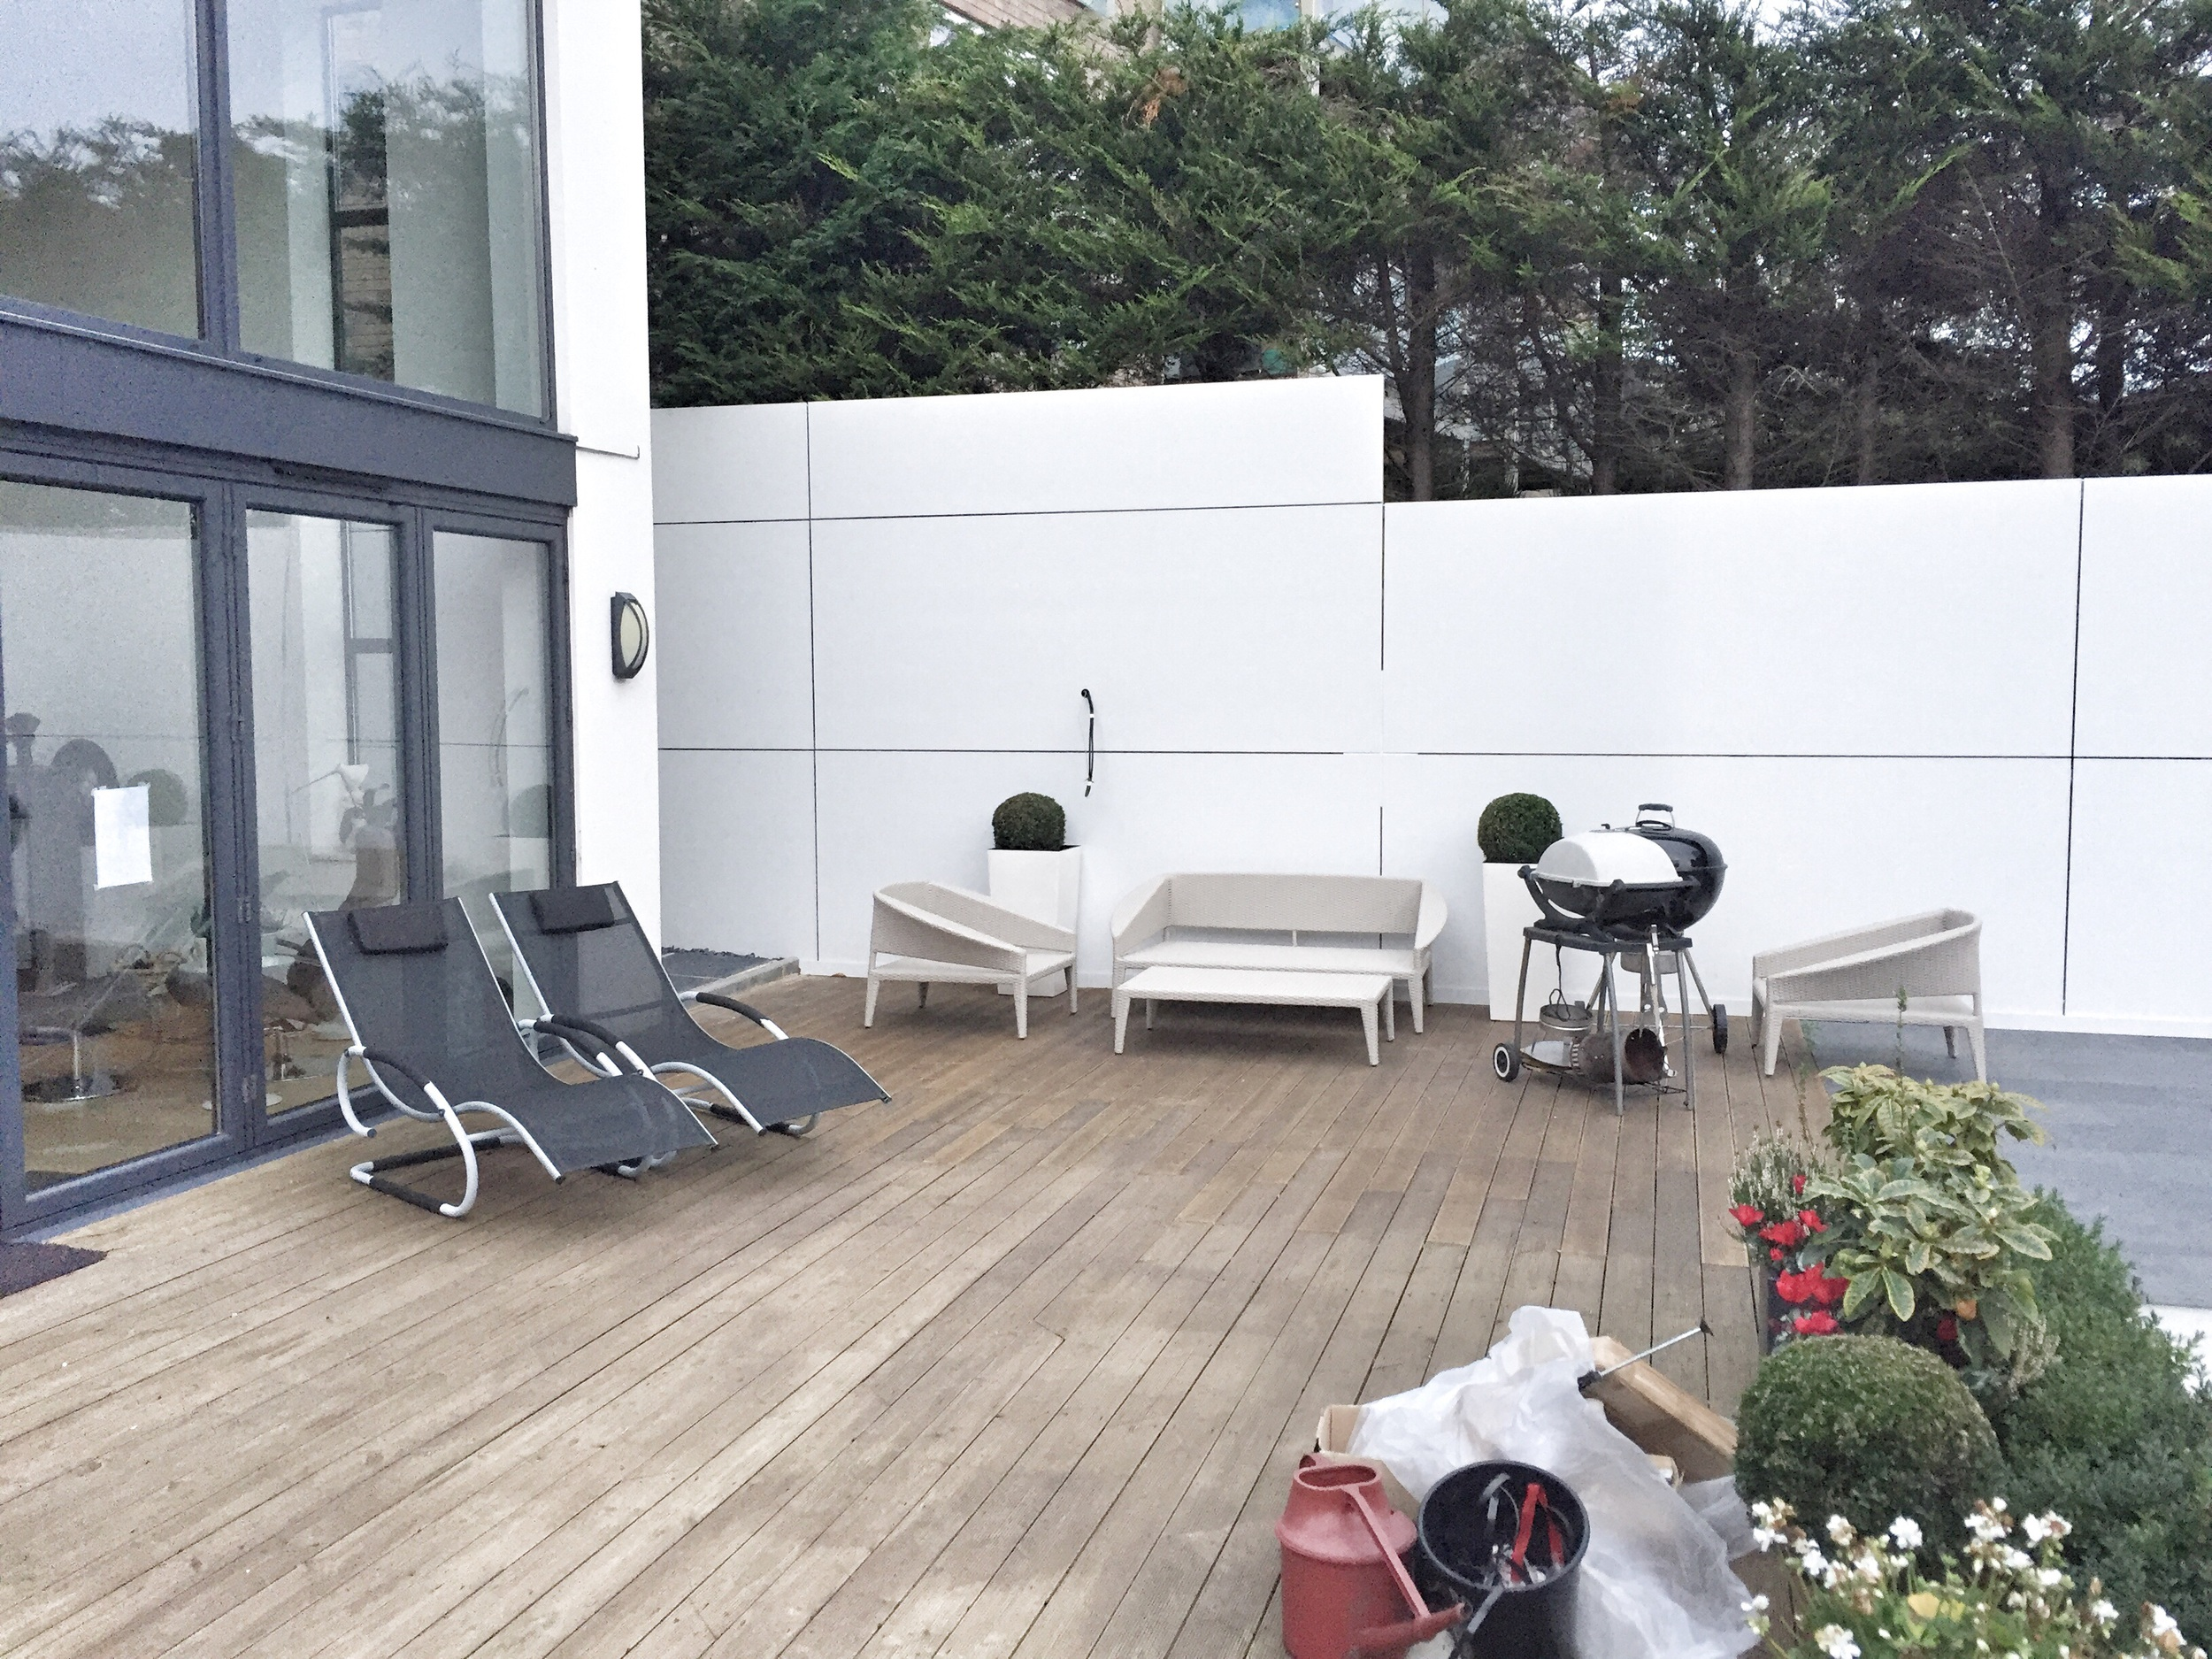 The customer has oiled the decking to attain a darker colour.